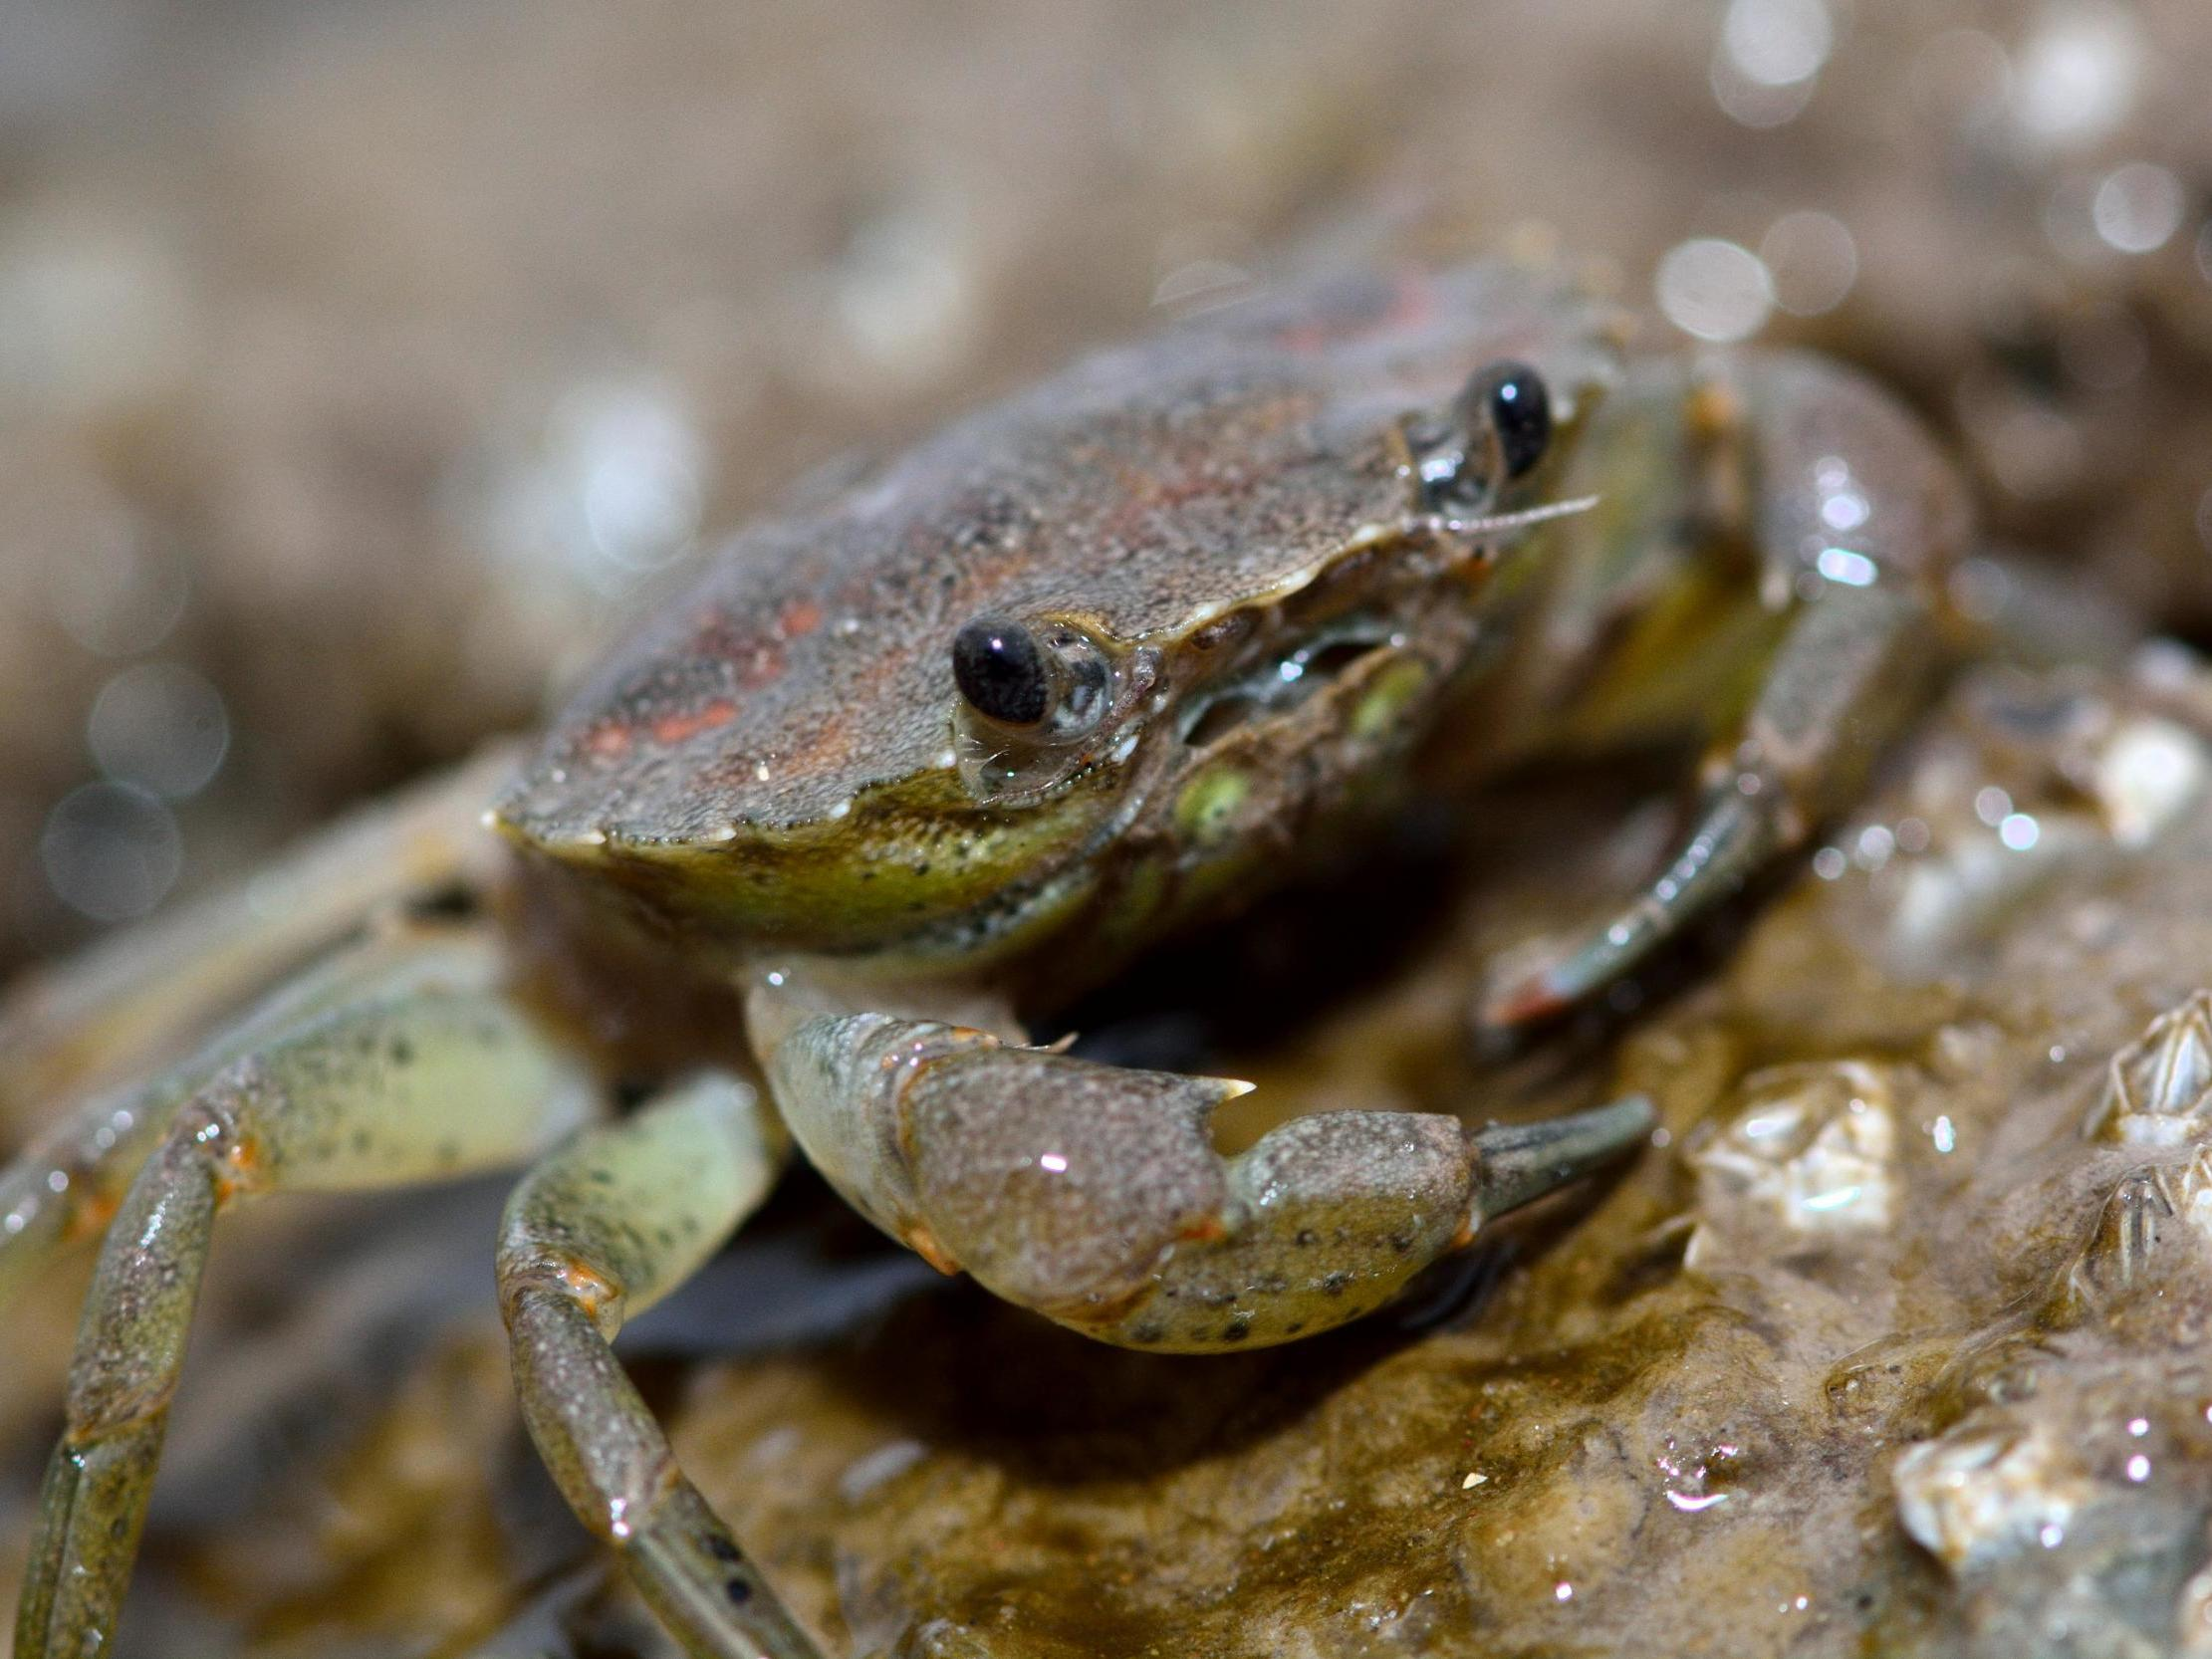 Crabs in Thames found with stomachs 'completely full of plastic'